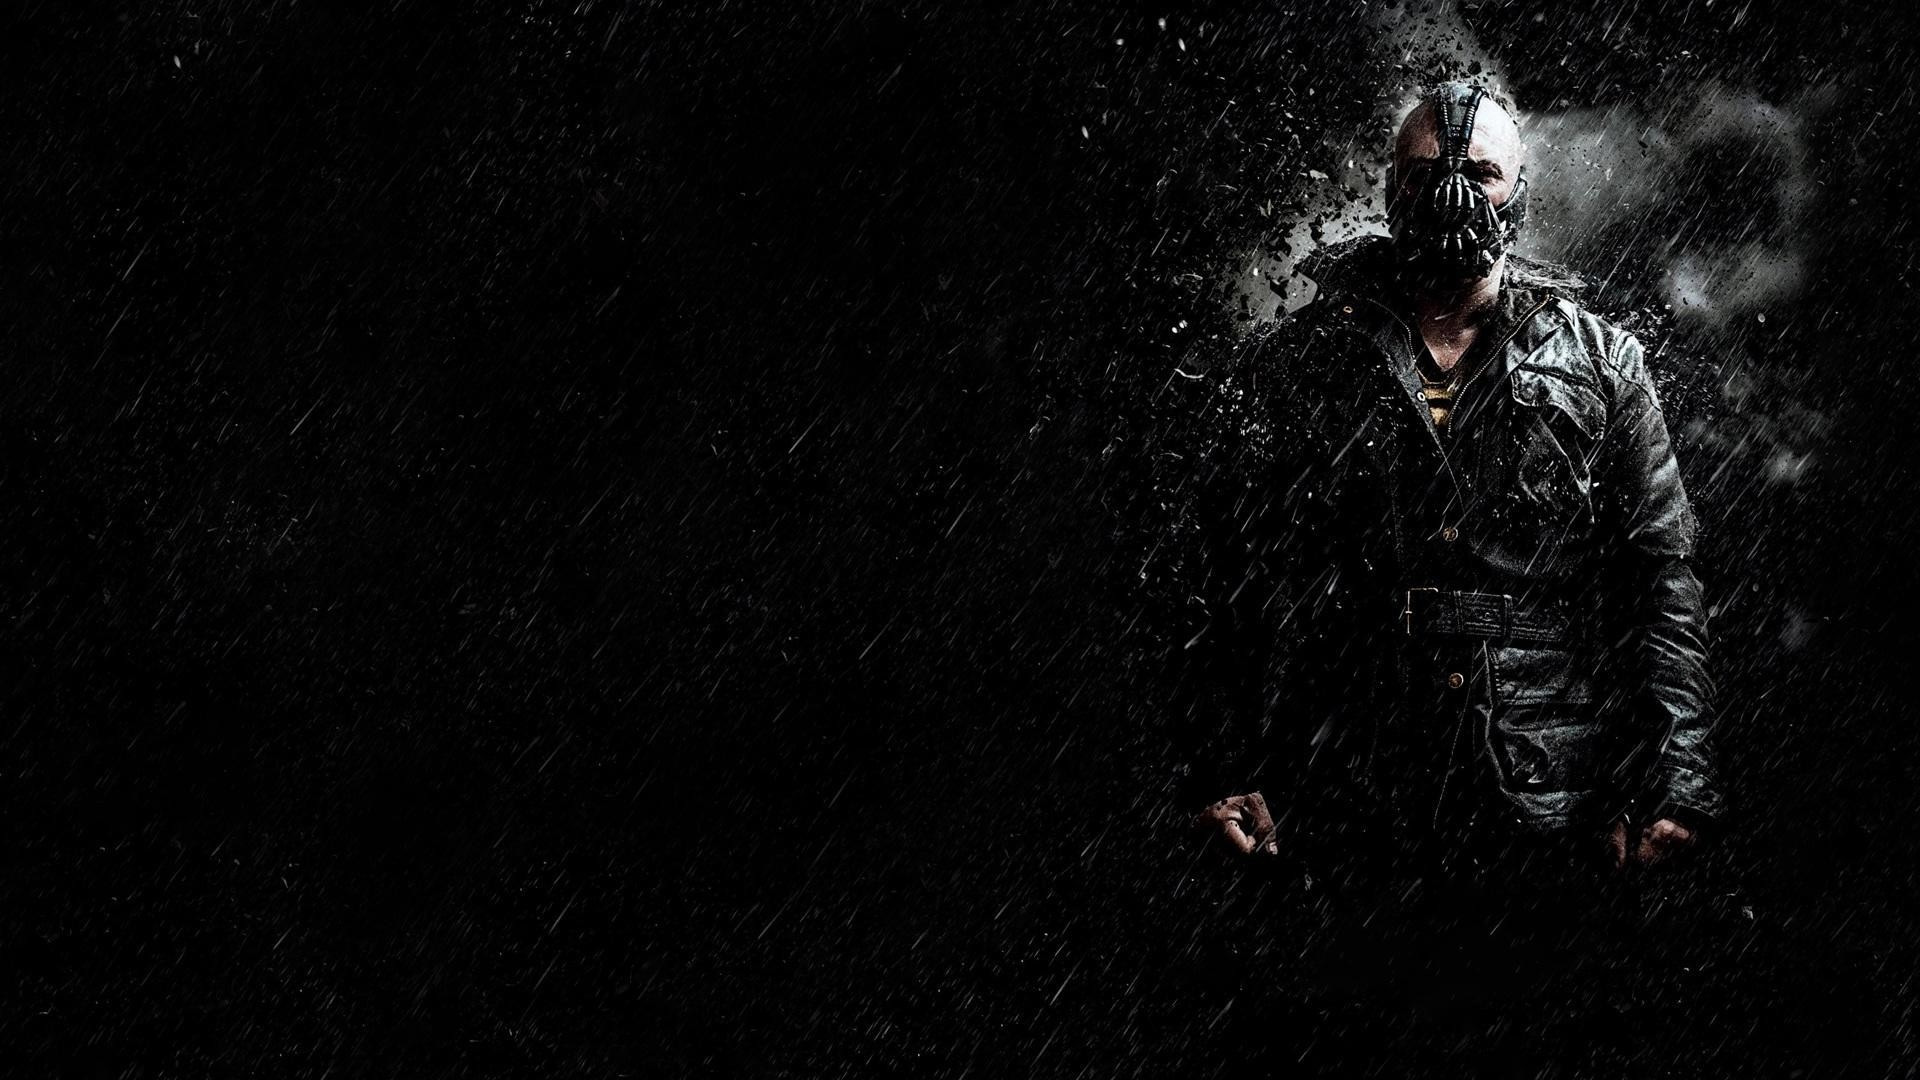 1920x1080 Bane Wallpaper: Related Pictures The Bane Wallpaper Desktop .